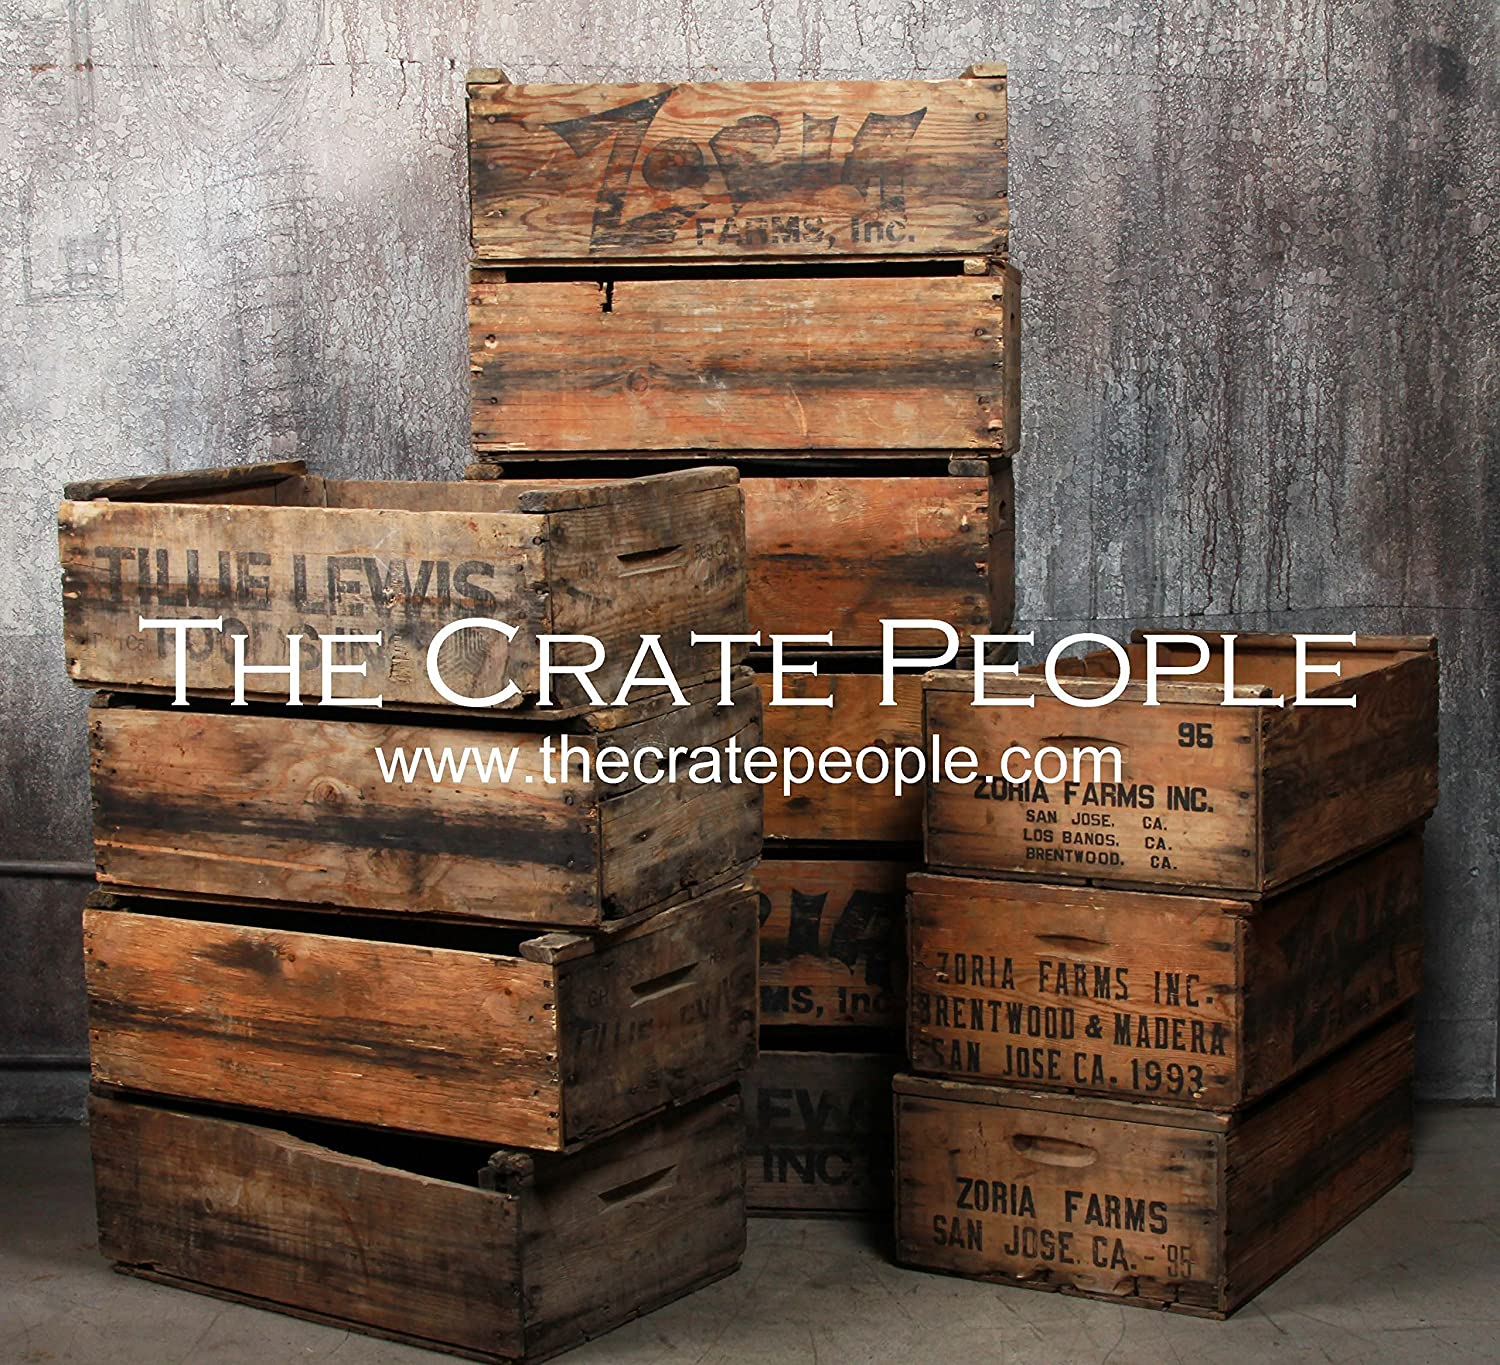 wood crate furniture. Amazon.com: Zoria Farm Vintage Wood Crates, Rustic Crates - Hundreds Available: Handmade Crate Furniture P